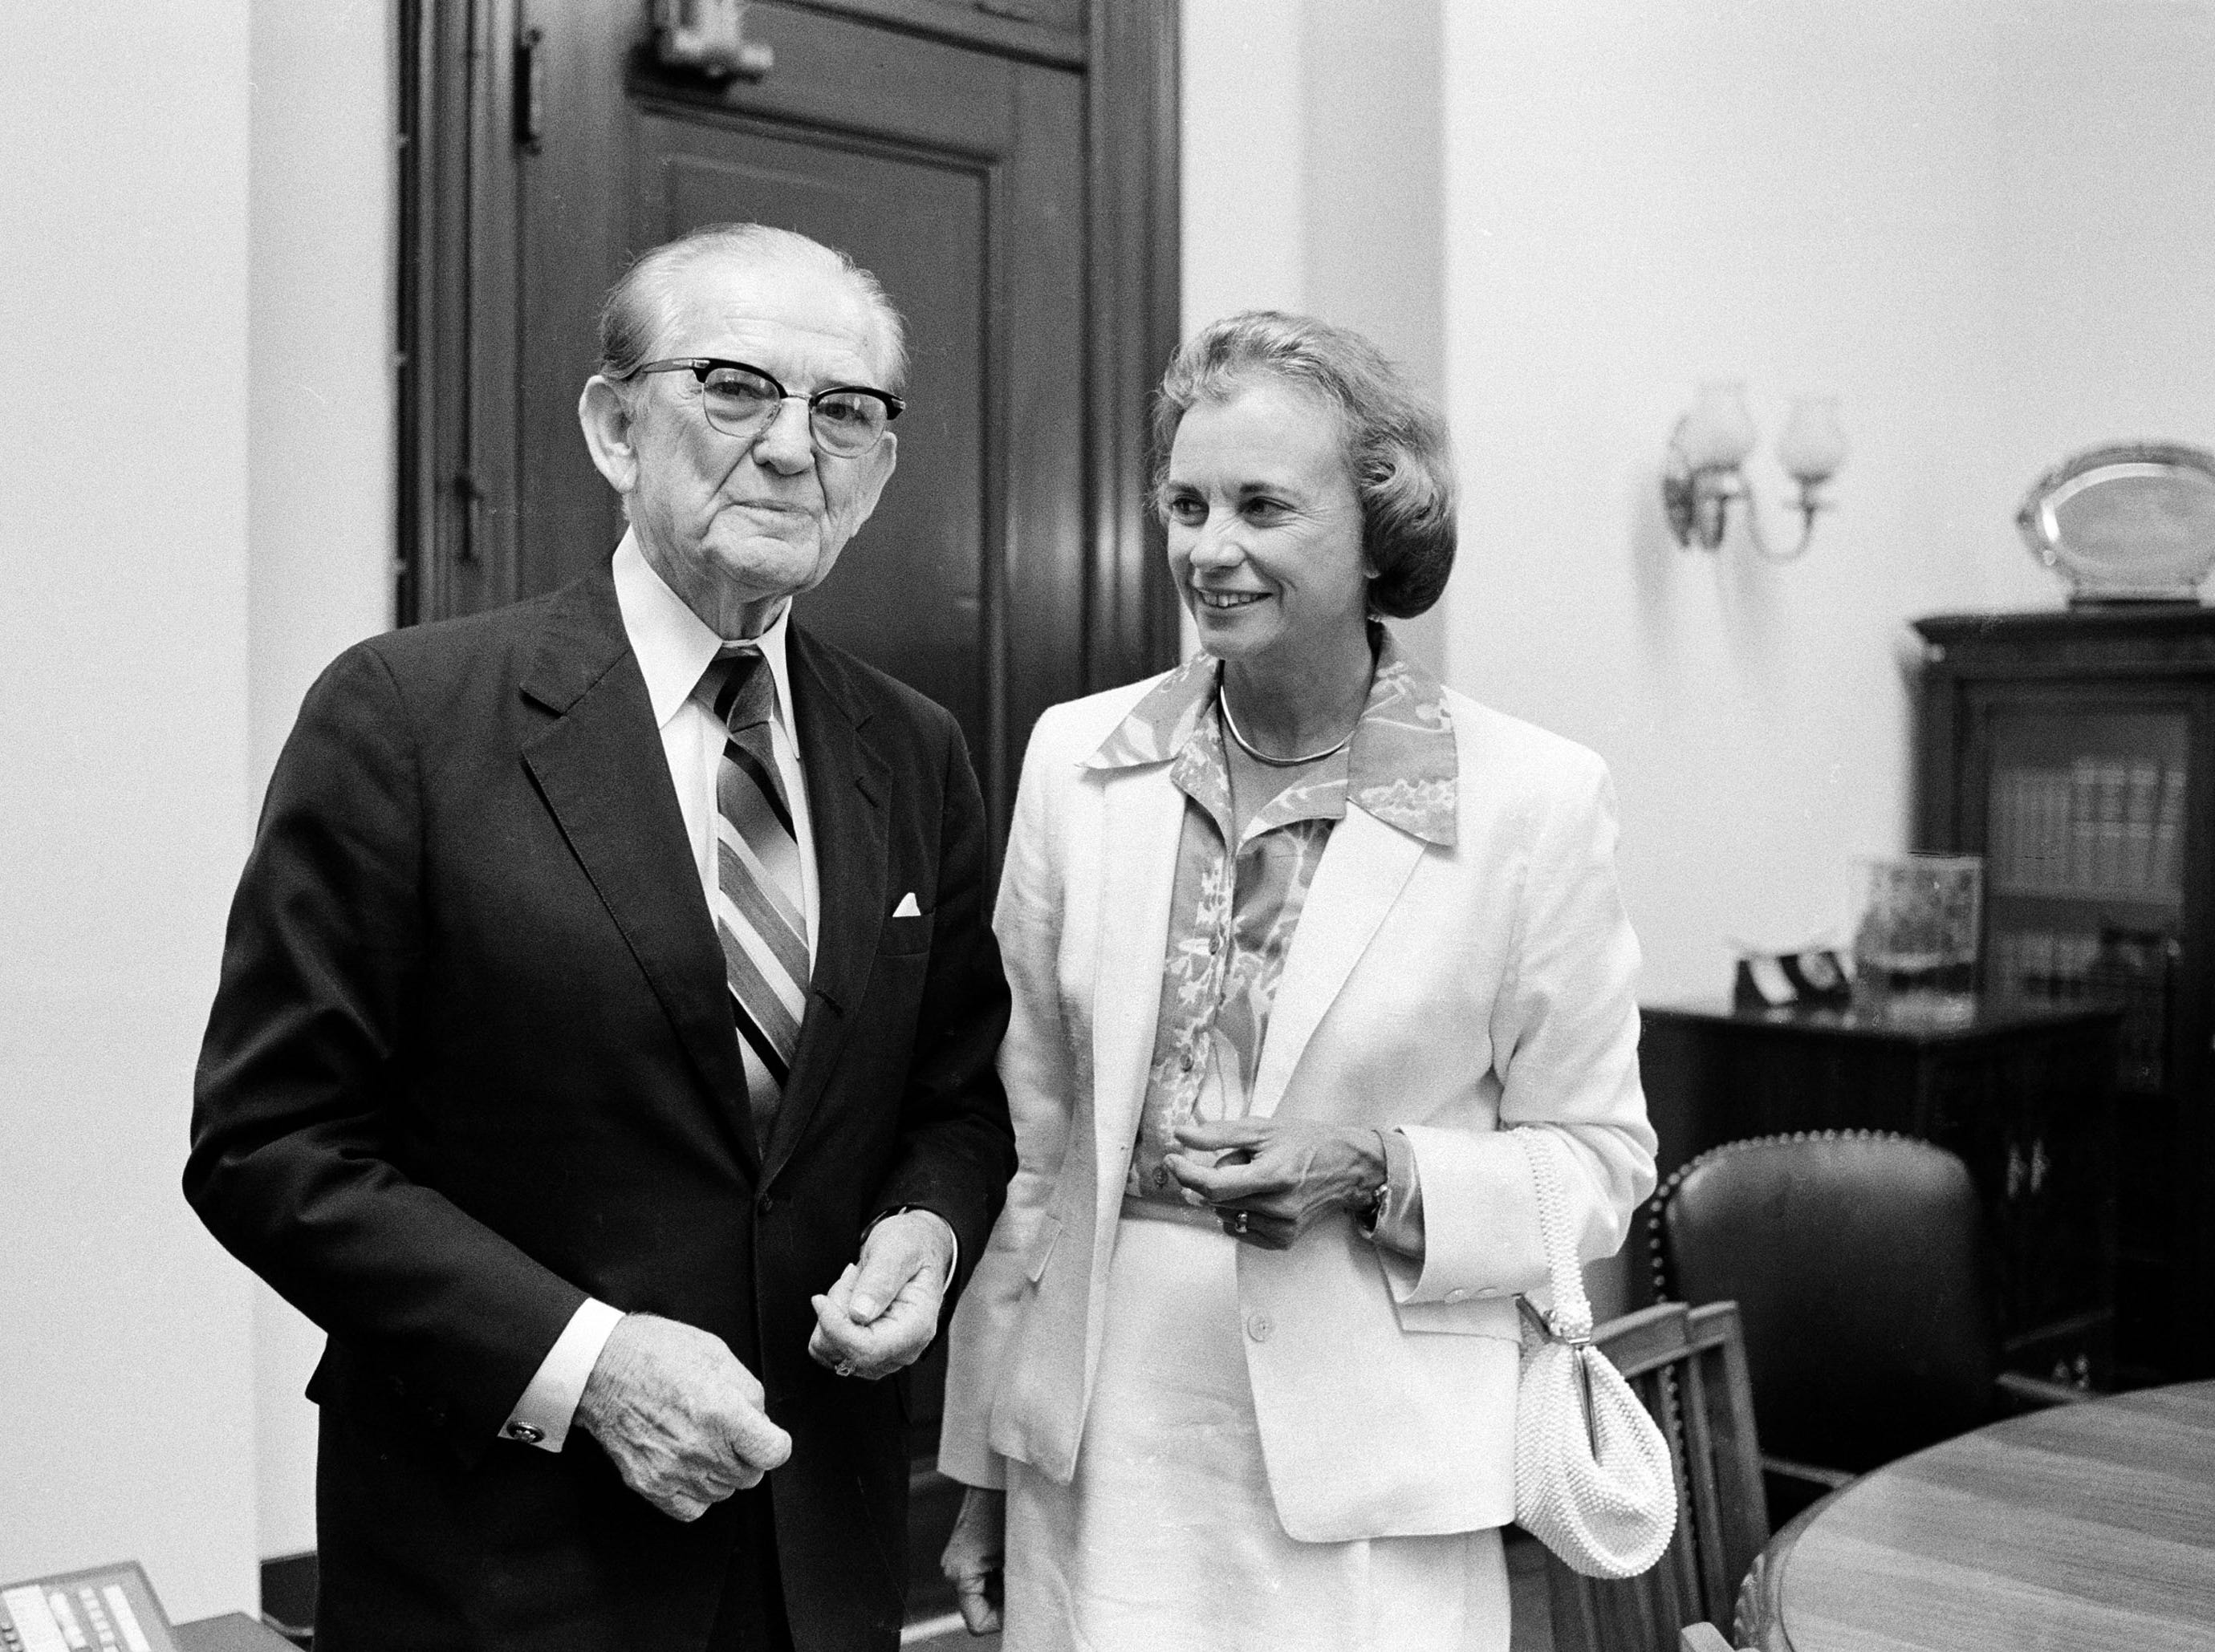 Supreme Court nominee Sandra Day O'Connor pays a visit to Sen. John Stennis, D-Miss., in his Capitol Hill office, July 16, 1981.